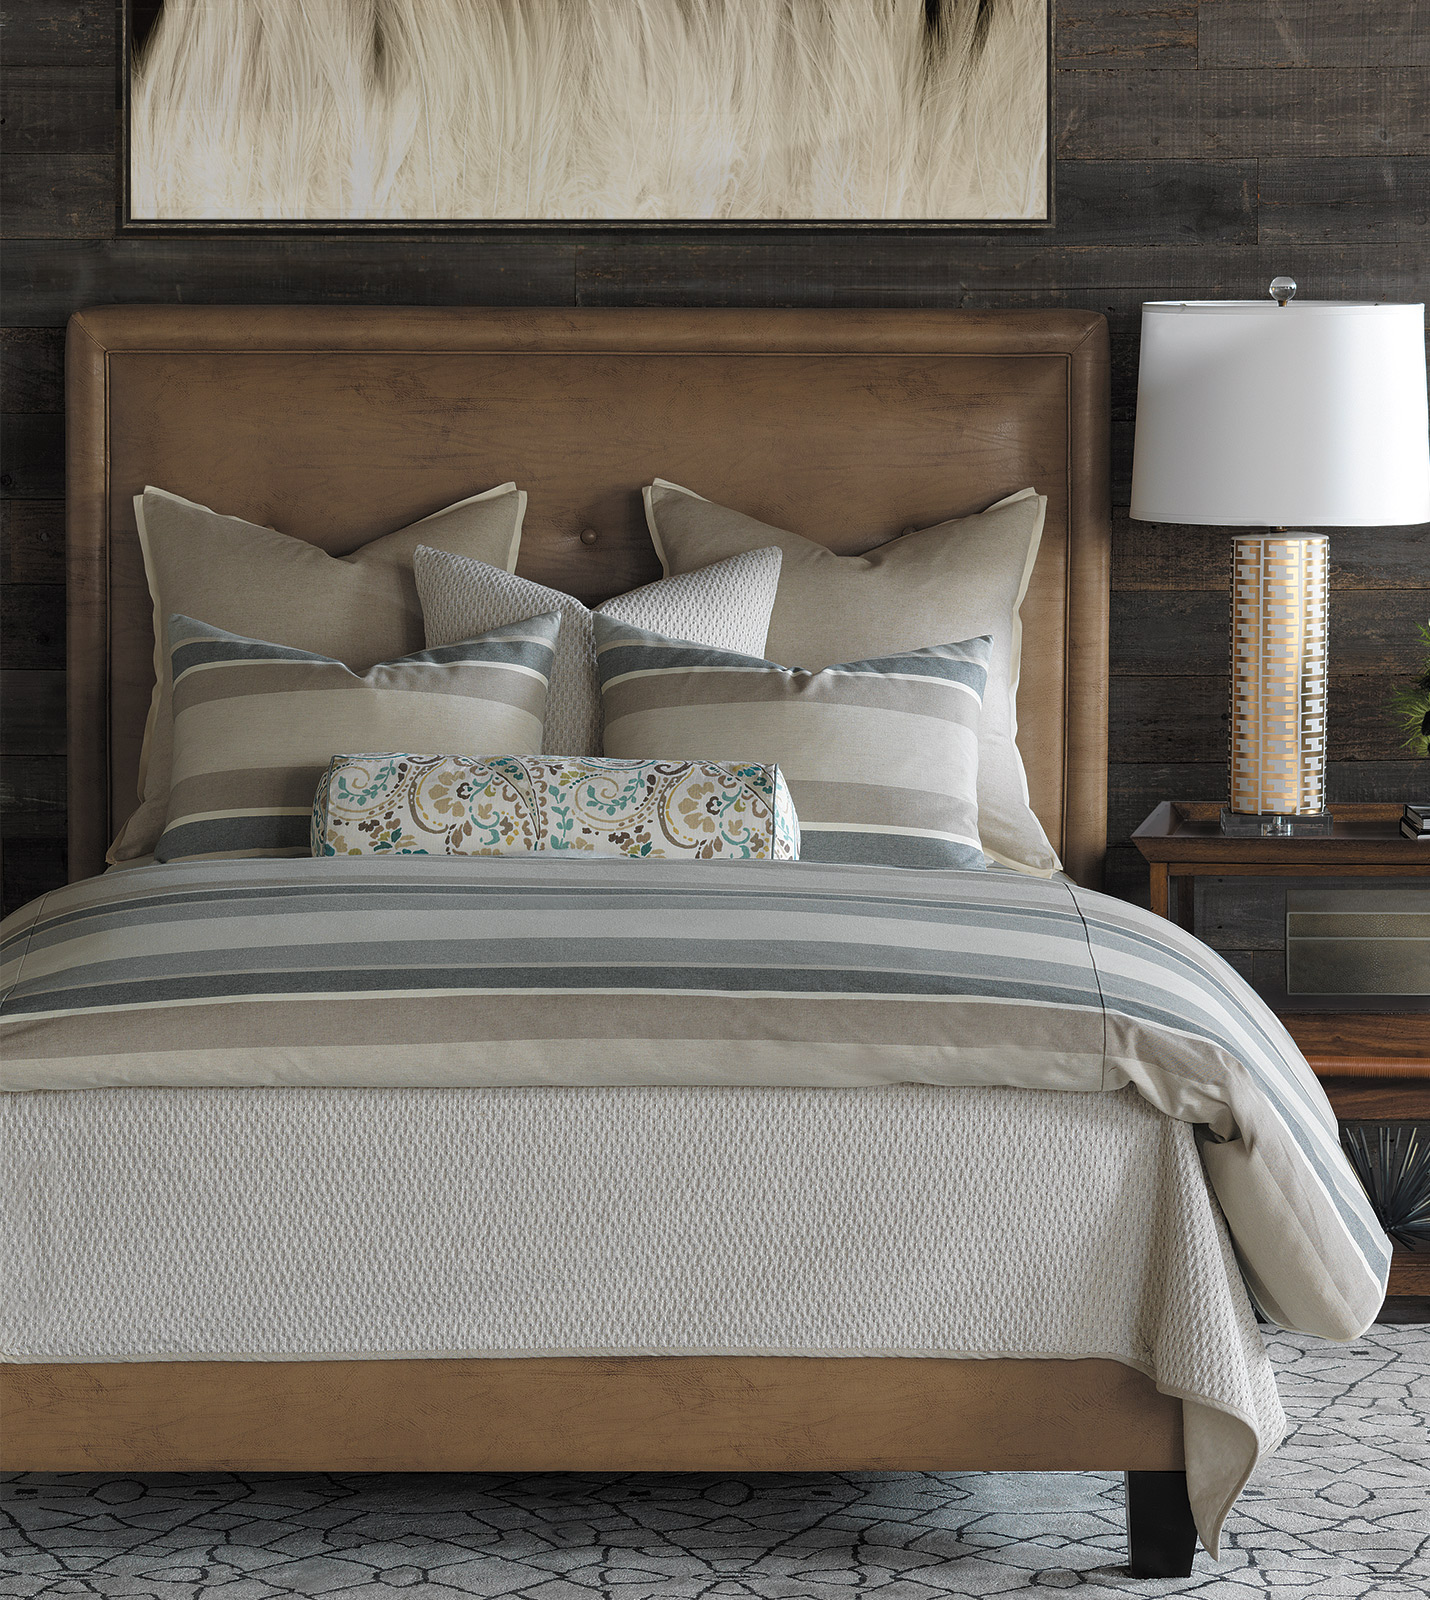 thom filicia luxury bedding by eastern accents morrison. Black Bedroom Furniture Sets. Home Design Ideas